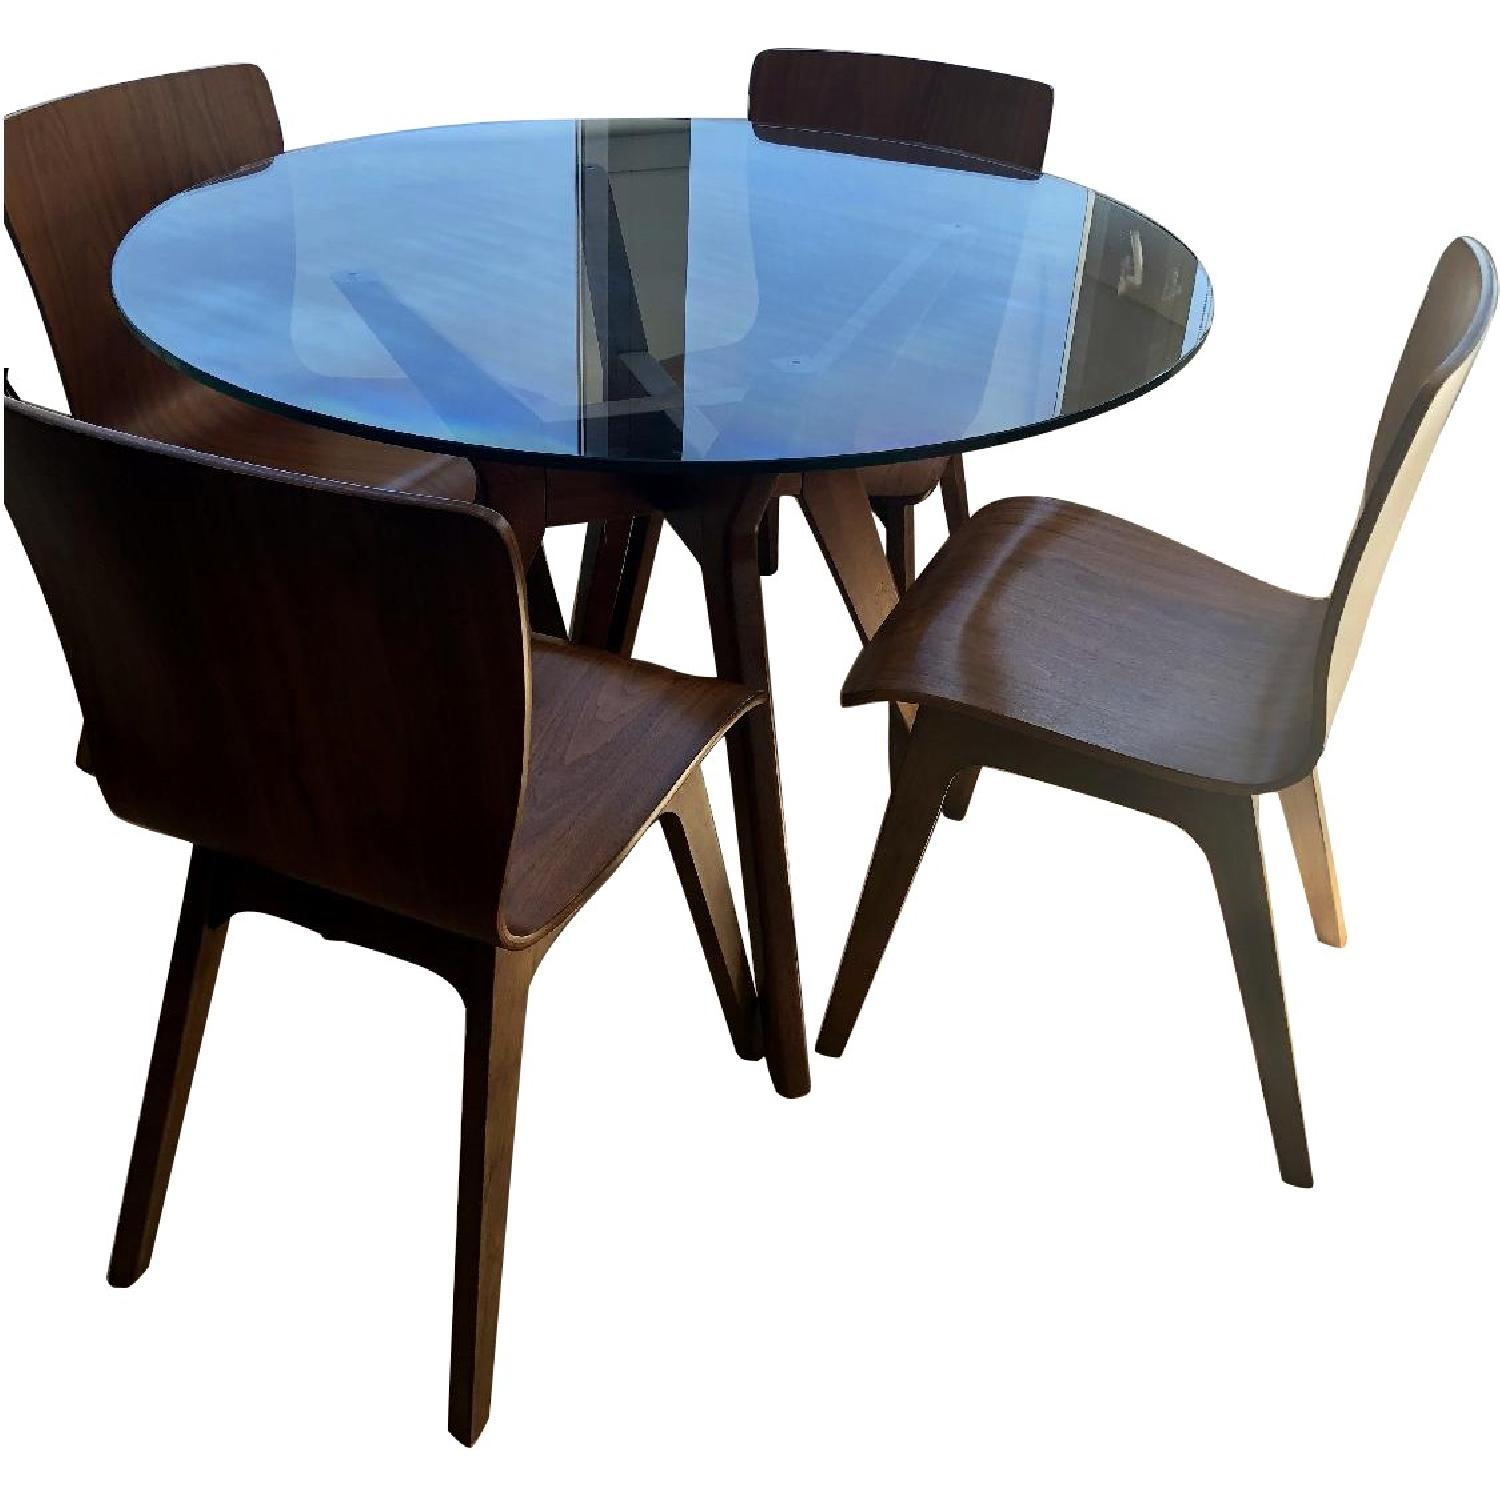 West Elm Jensen Round Glass Dining Table w/ 4 Crest Chairs